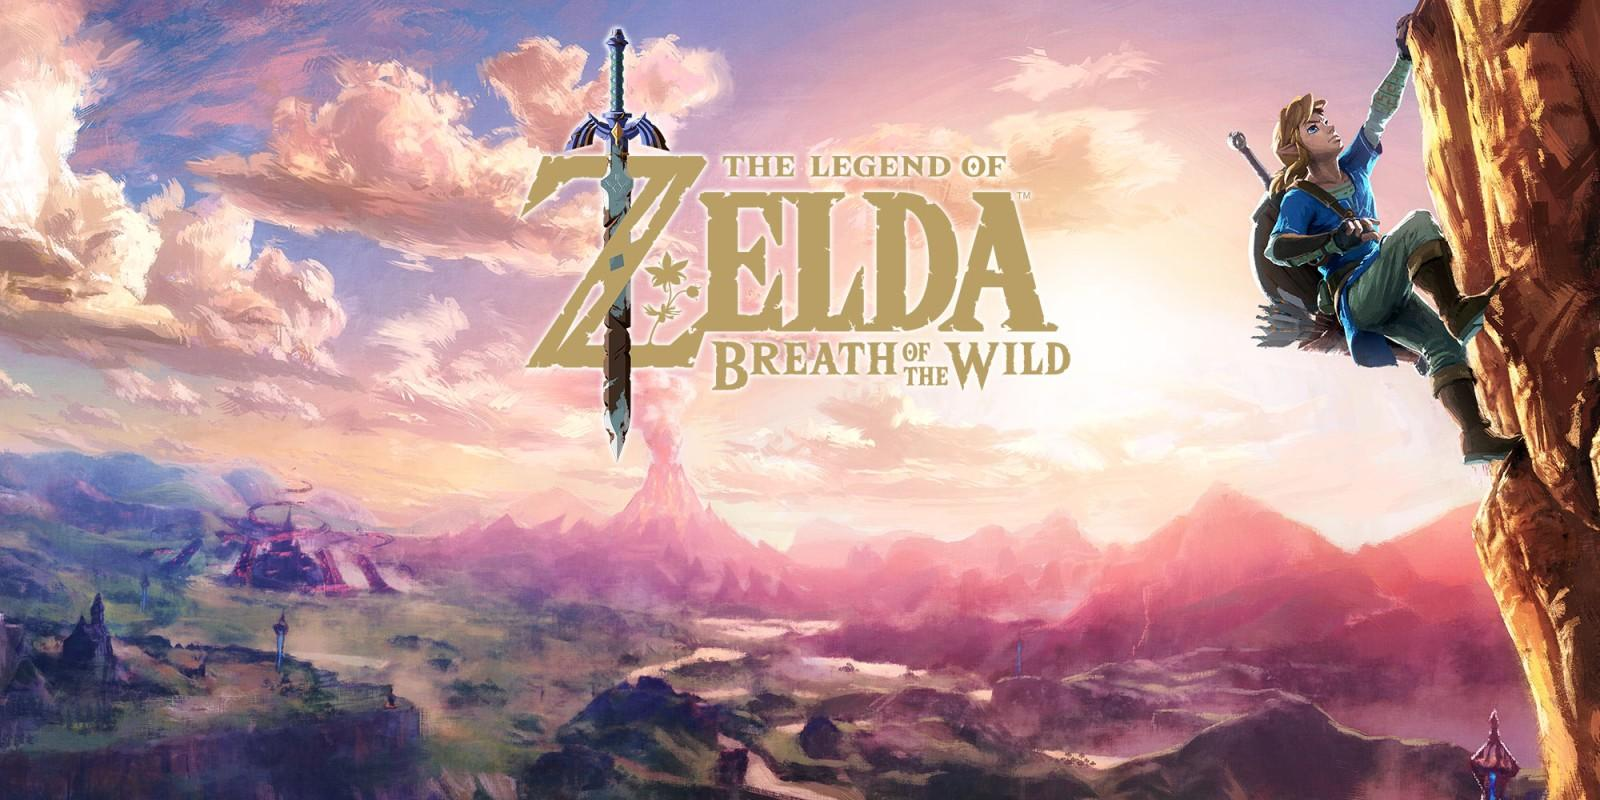 The Legend of Zelda: Breath of the Wild PC Game Download For Free